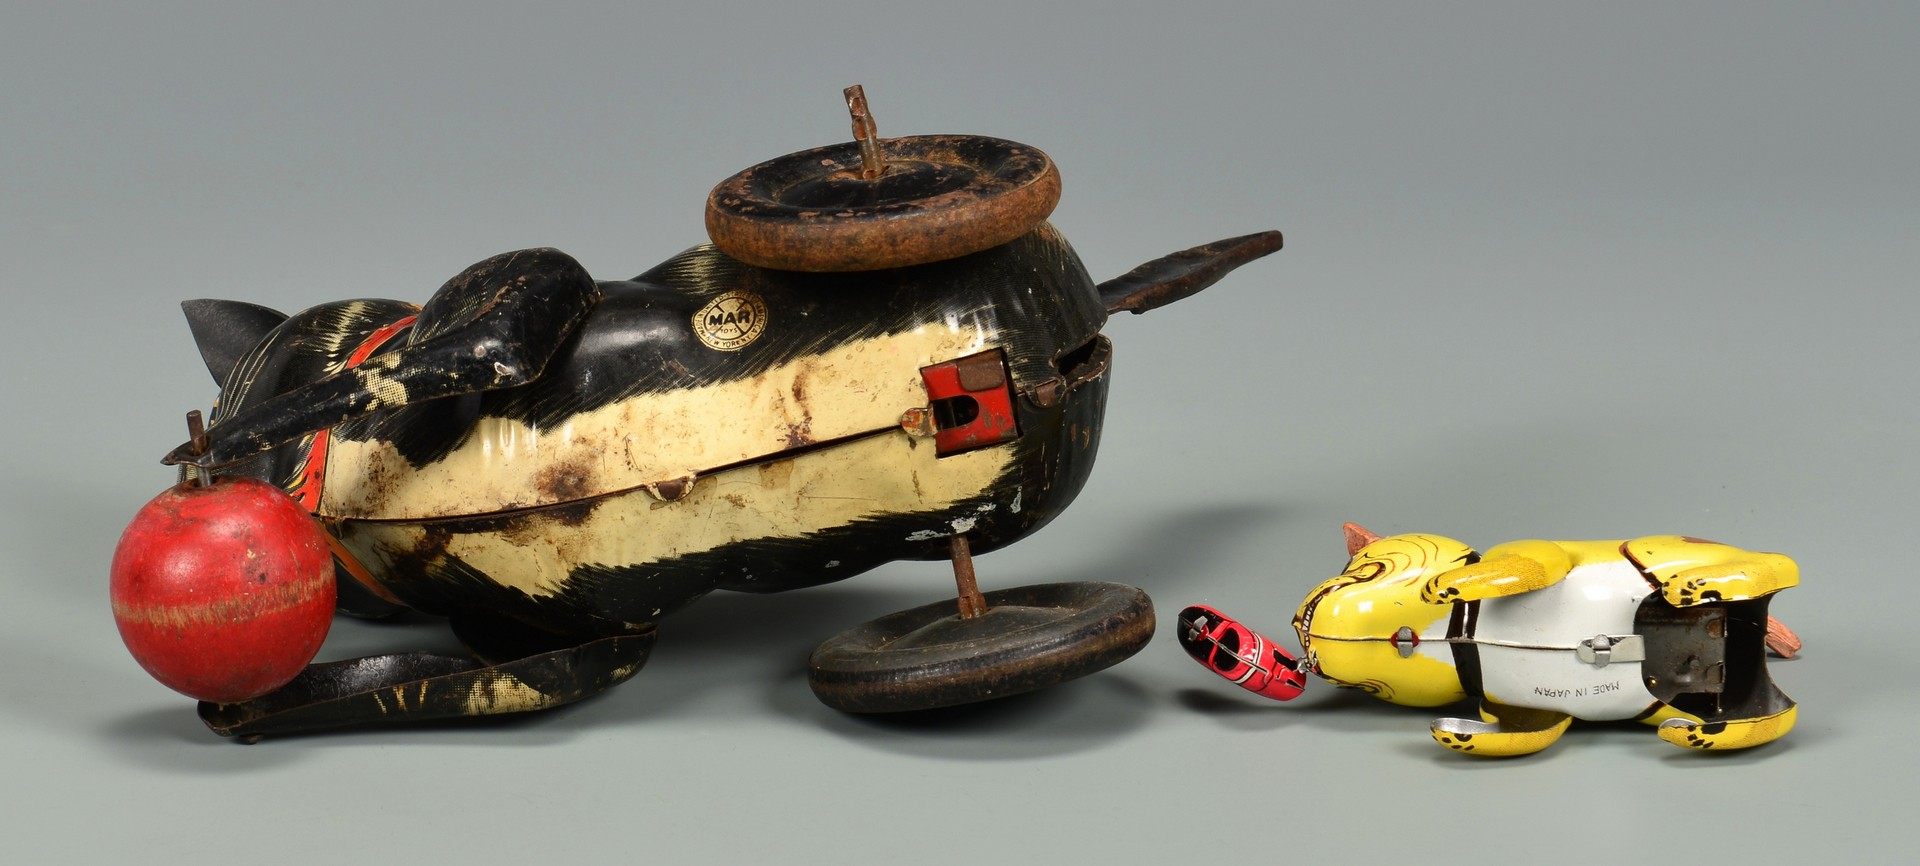 Lot 802: Grouping of Vintage Tin & Cast Iron Toys, 10 total